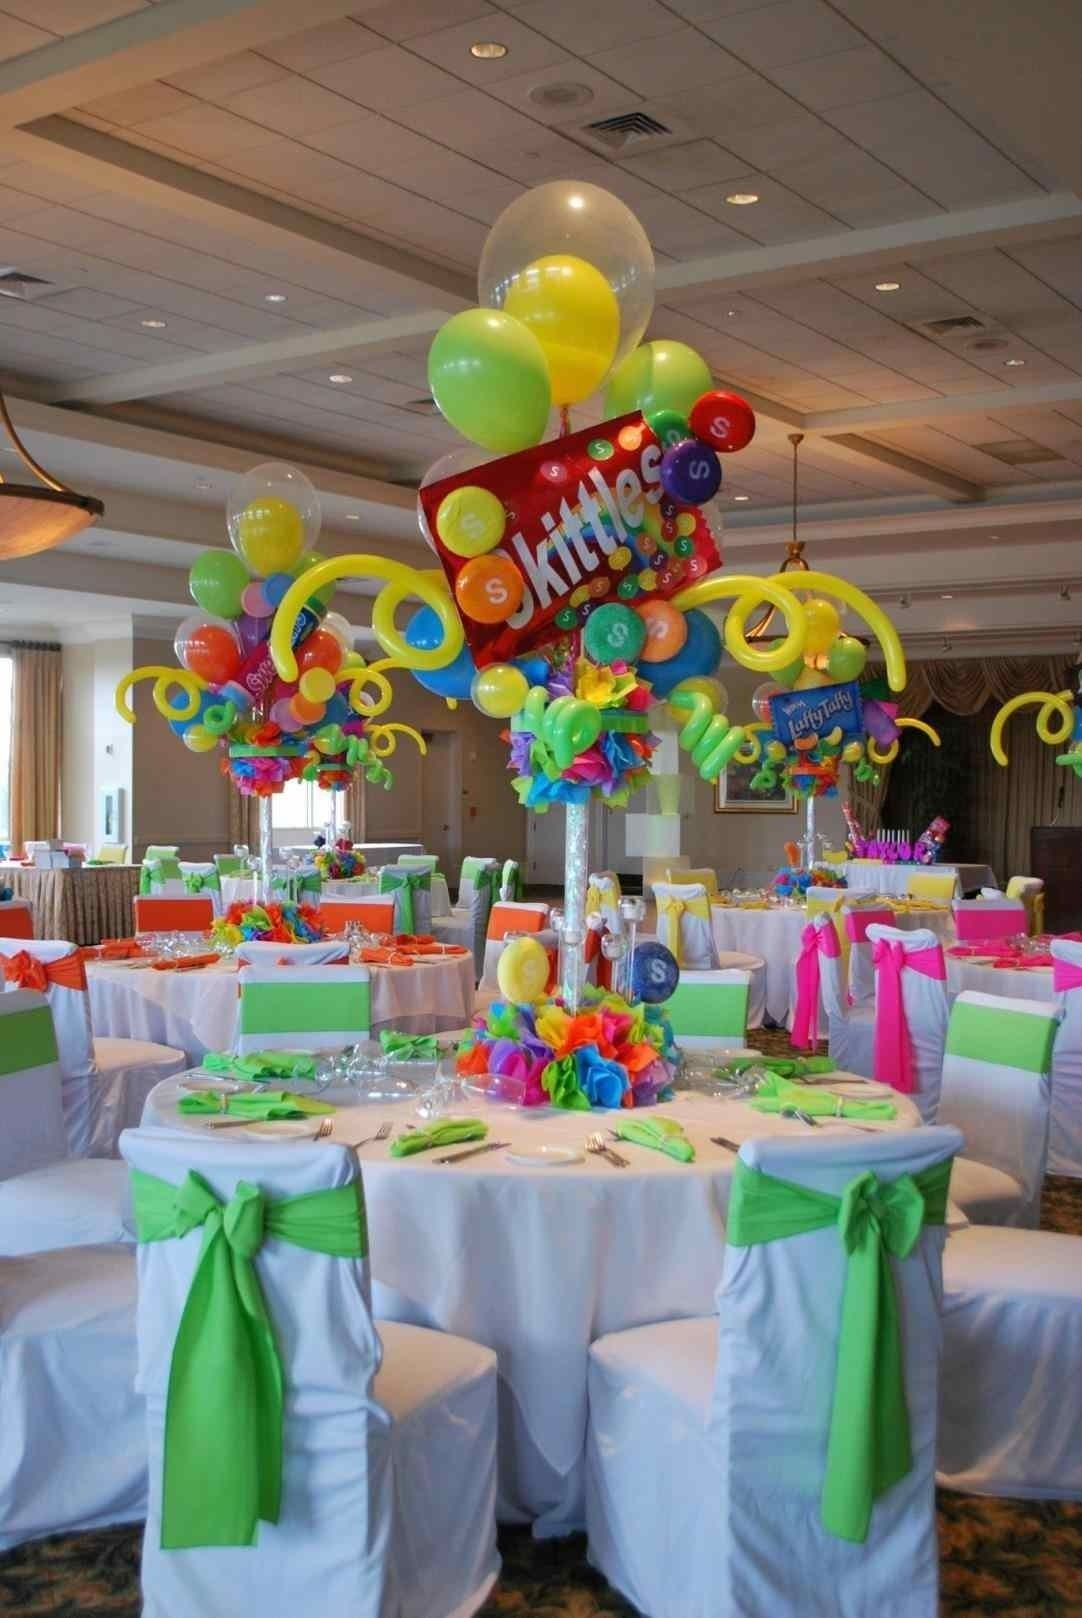 10 Lovely Spring Party Ideas For Adults back with bandana material branded birthday pintrest themes 2020